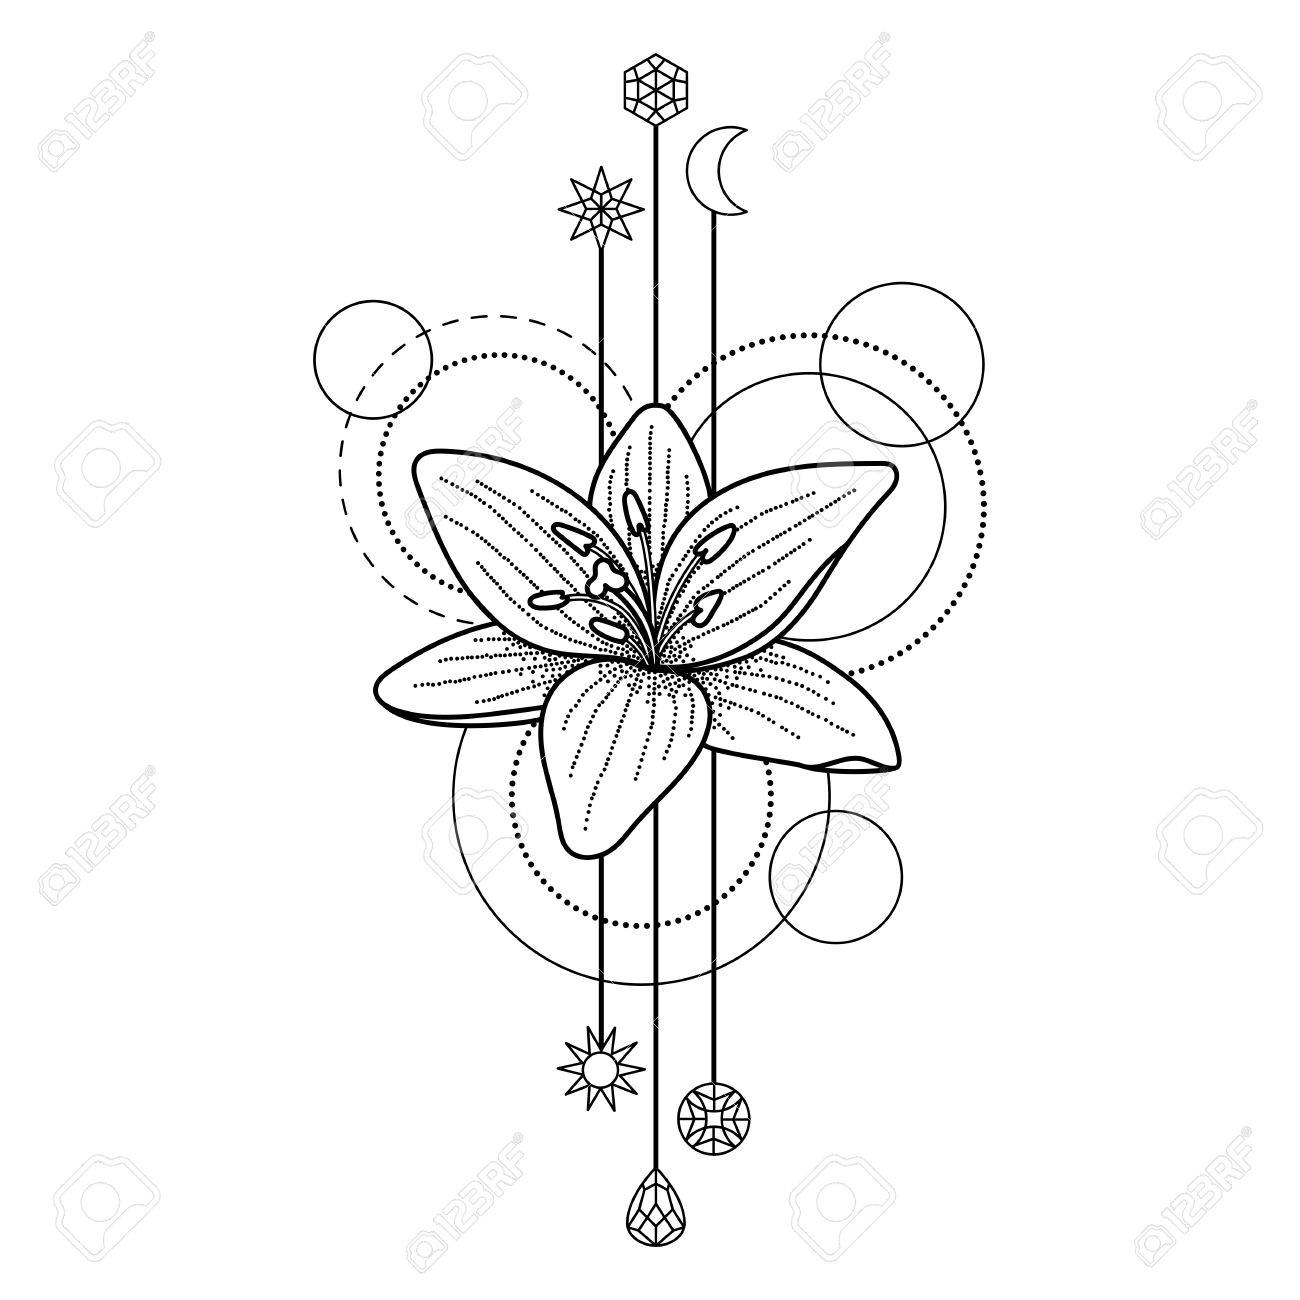 Abstract floral techno tattoo with lily and geometric elements abstract floral techno tattoo with lily and geometric elements on white background stock vector 68976226 izmirmasajfo